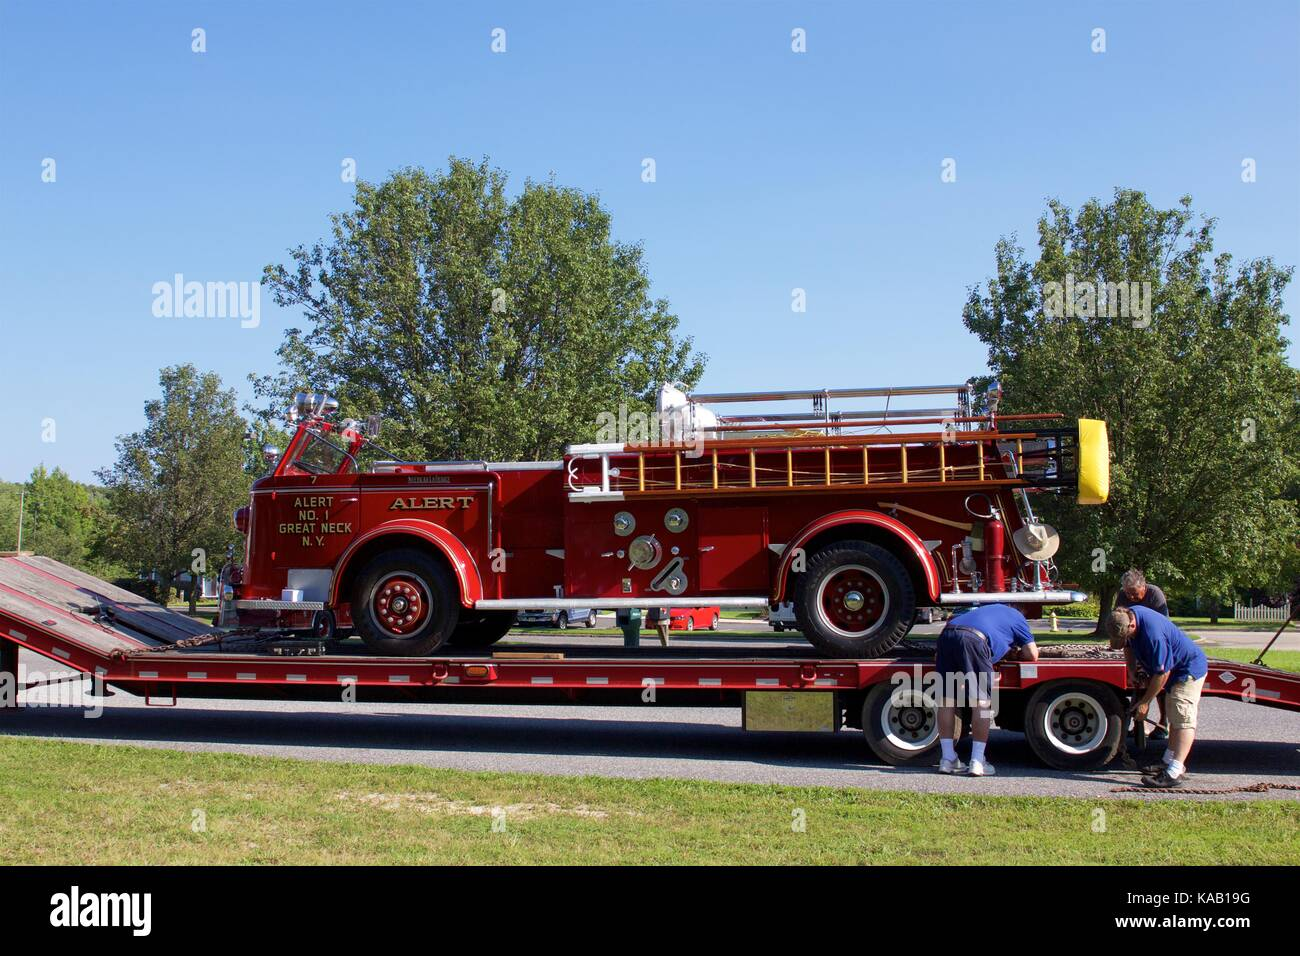 Some of the historic fire engines are transported to the muster via flatbed trailer. - Stock Image